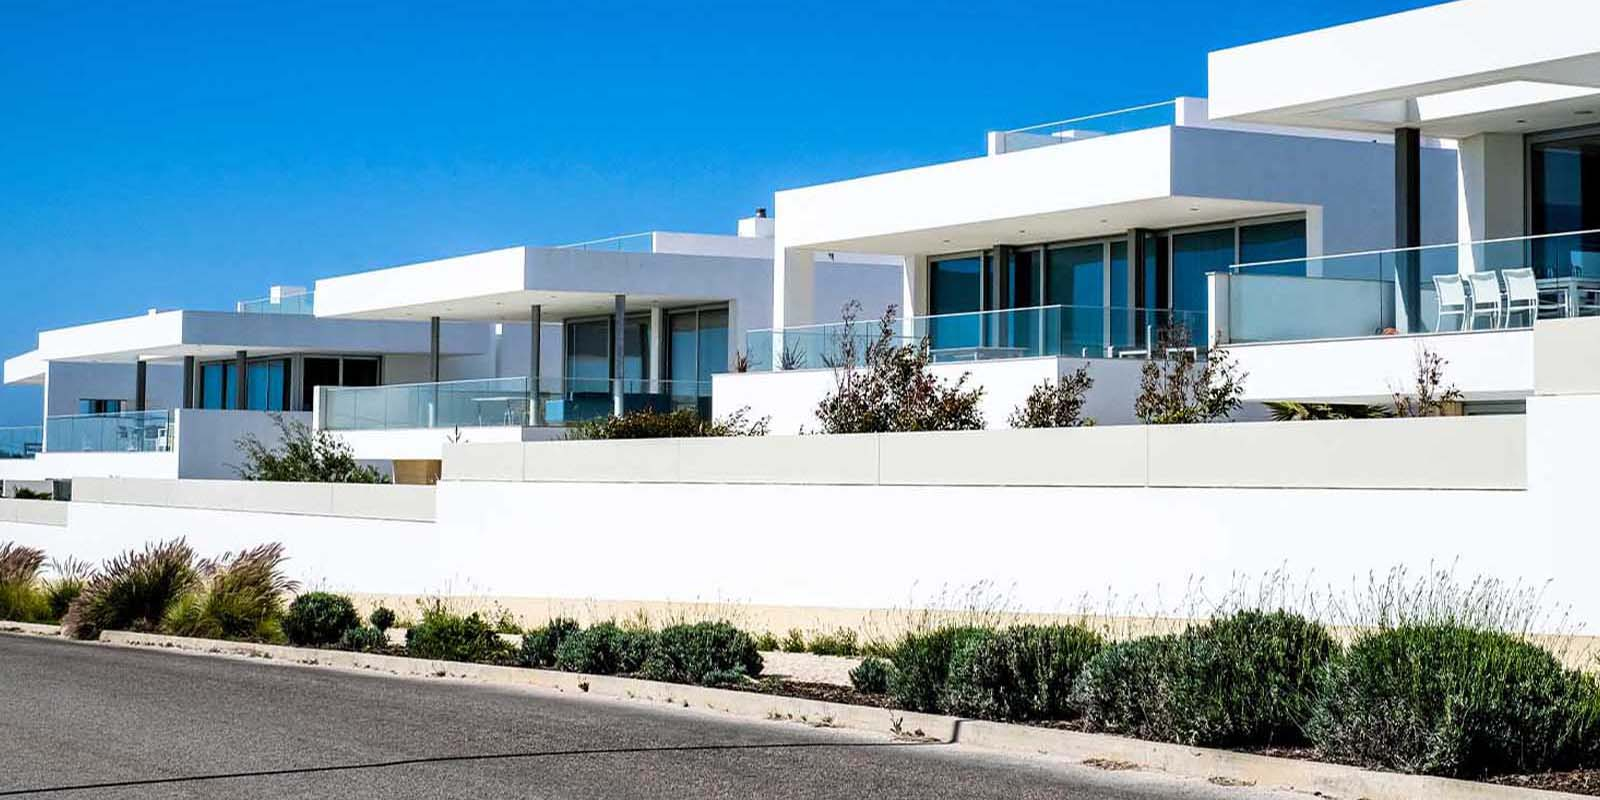 Portugal's real estate market is ripe with prime properties perfect for residential and corporate setups